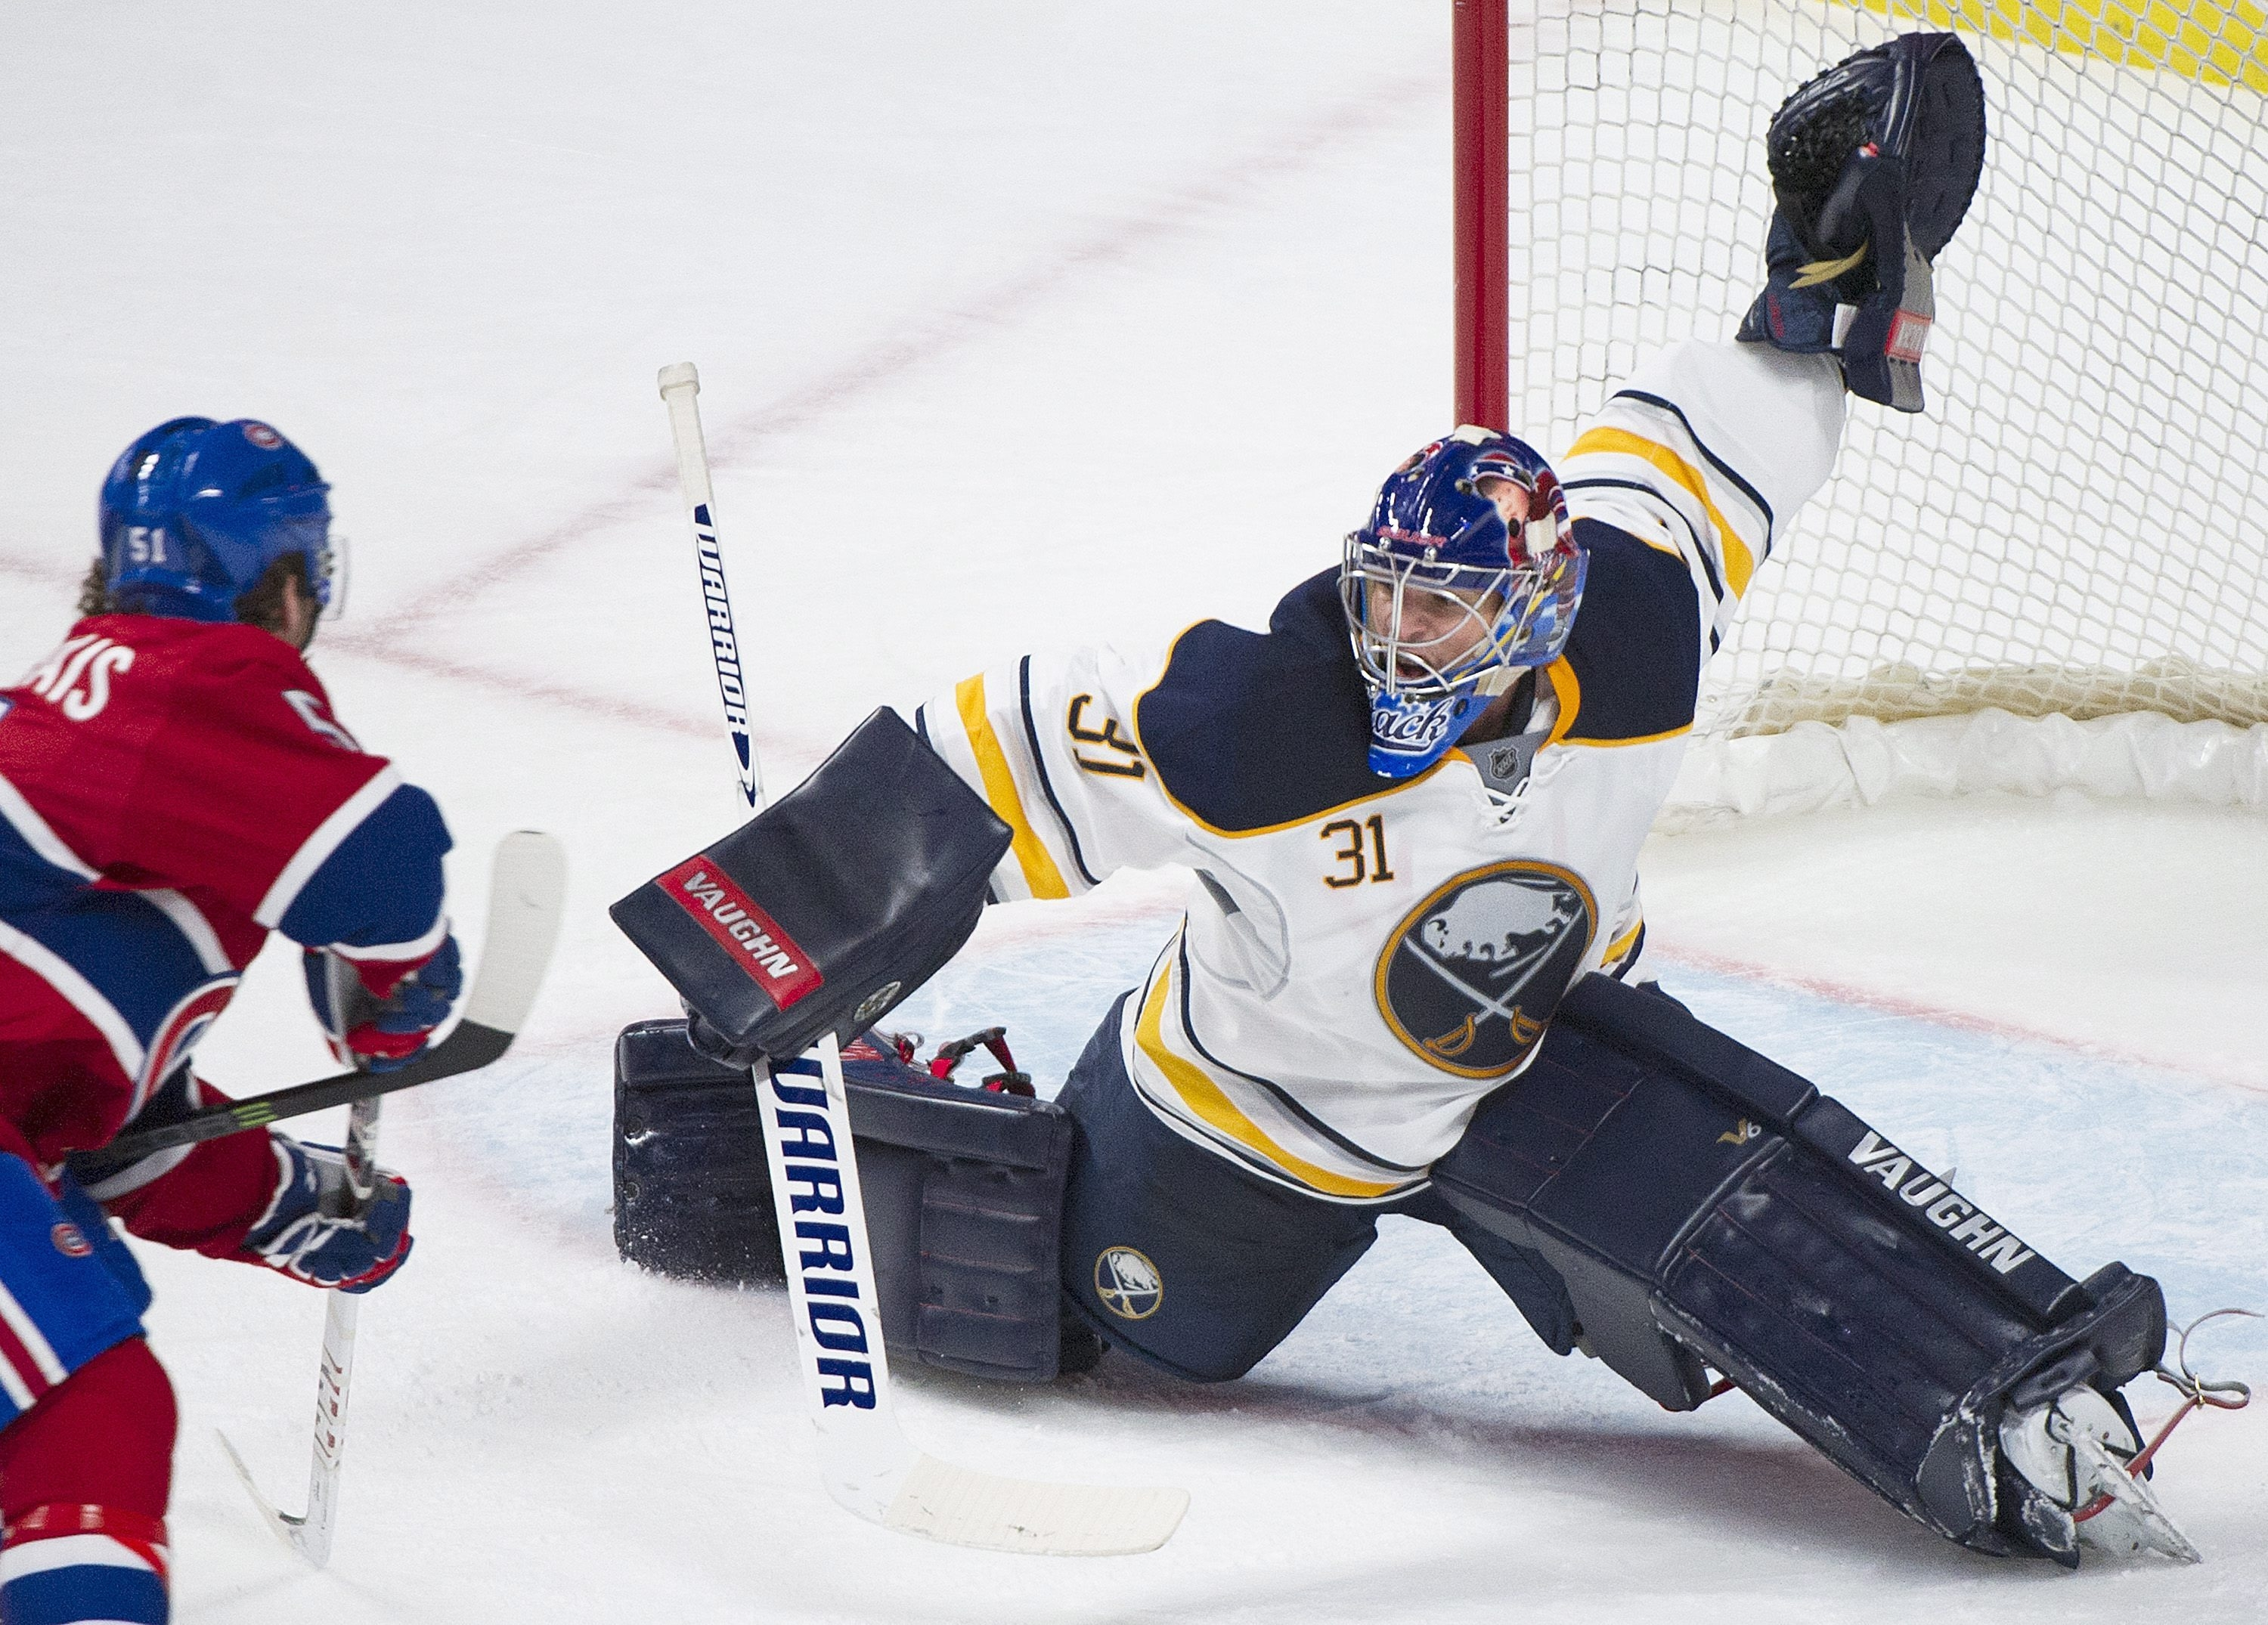 Matt Hackett has stopped 68 of 71 shots in his first two games with the Buffalo Sabres, going 1-1-0 in those starts.